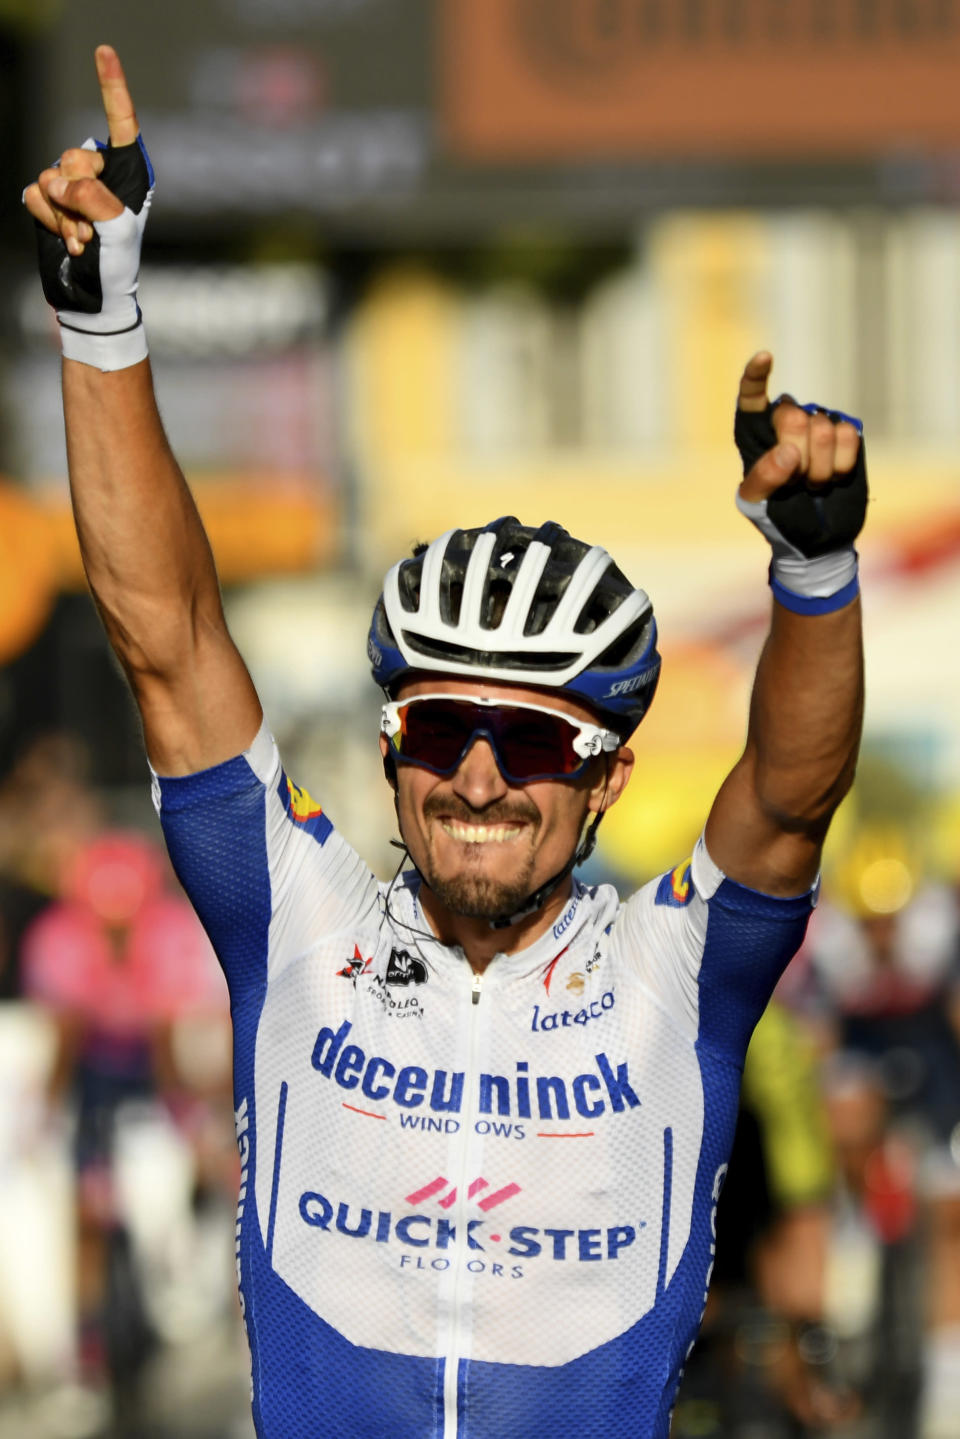 France's Julian Alaphilippe crosses the finish line to win the second stage of the Tour de France cycling race over 186 kilometers (115,6 miles) with start and finish in Nice, southern France, Sunday, Aug. 30, 2020. (Stuart Franklin/Pool photo via AP)